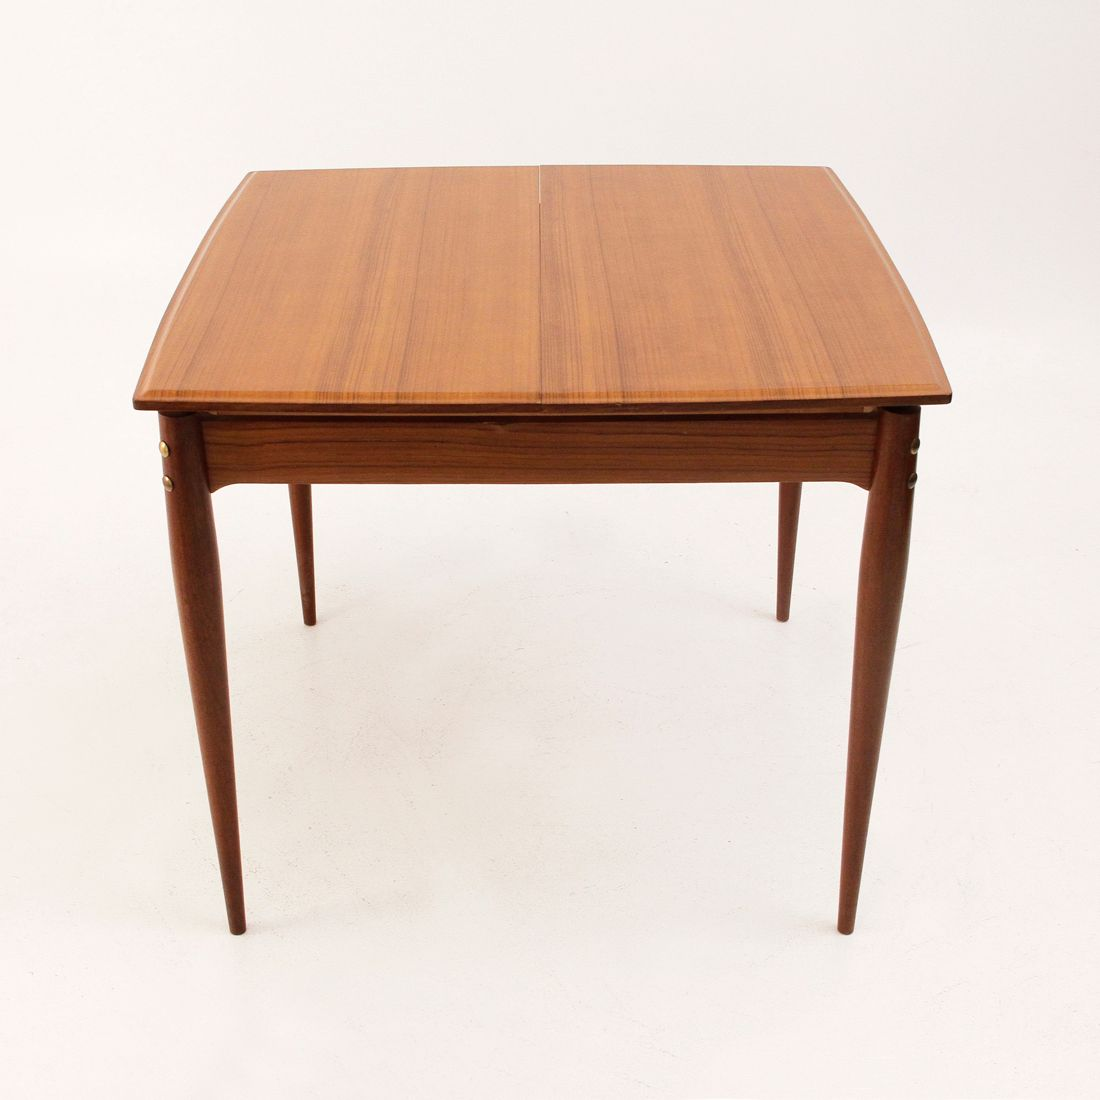 Italian Extendable Dining Table Square Extendable Italian Dining Table 1950s For Sale At Pamono